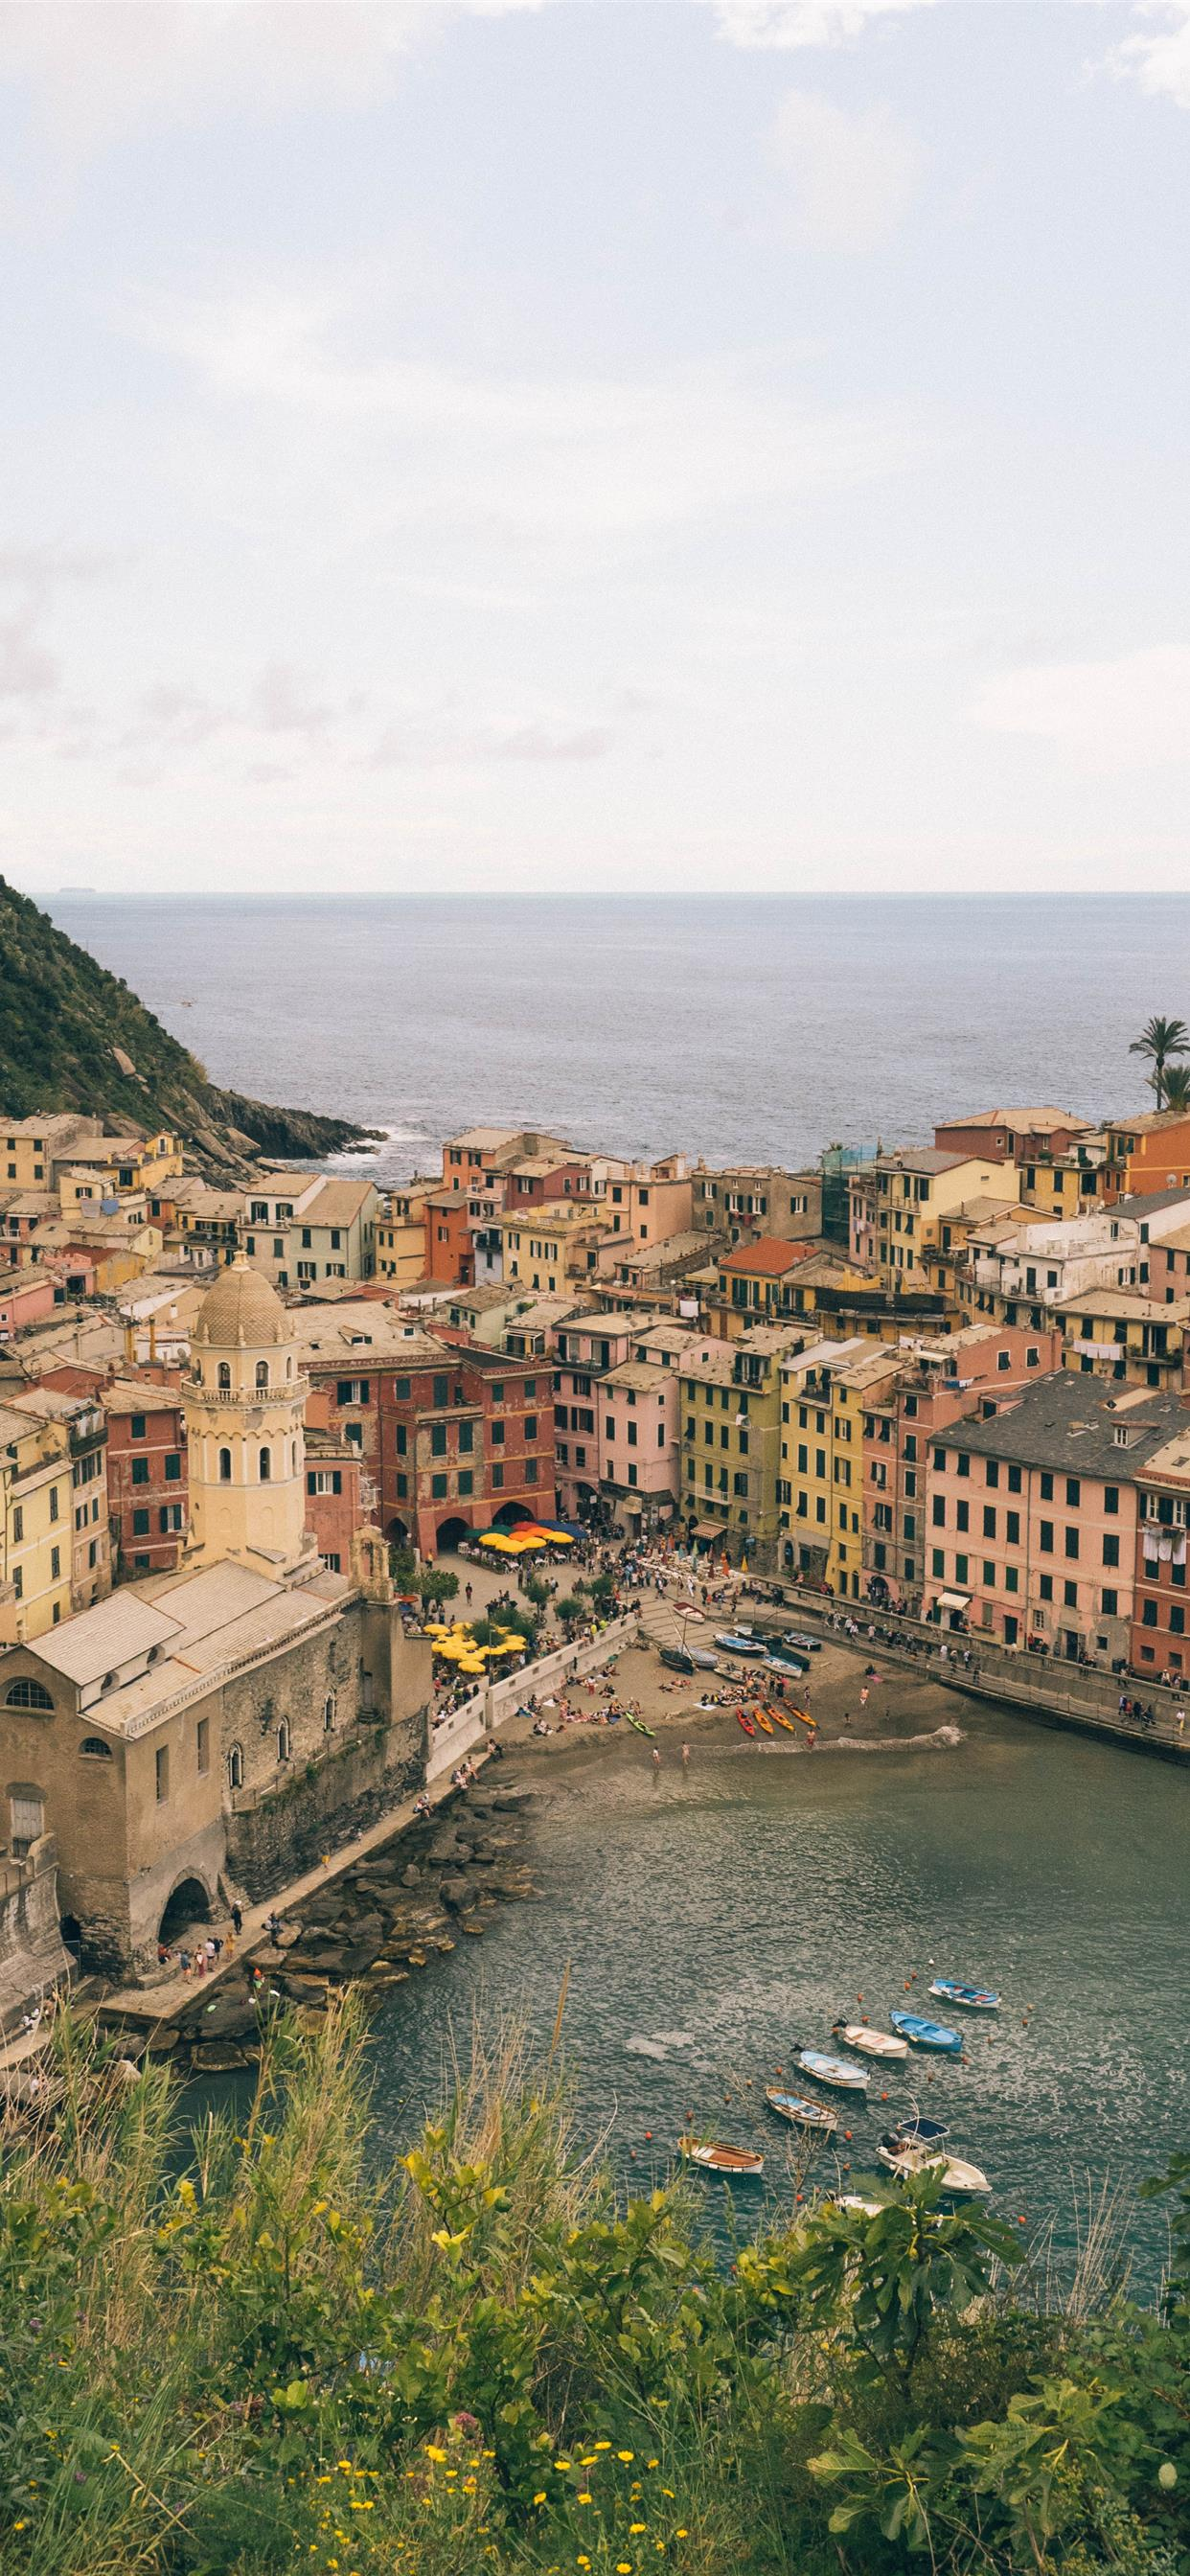 Vernazza Cinque Terre Italy May 2019 iPhone Wallpapers Download 1242x2688